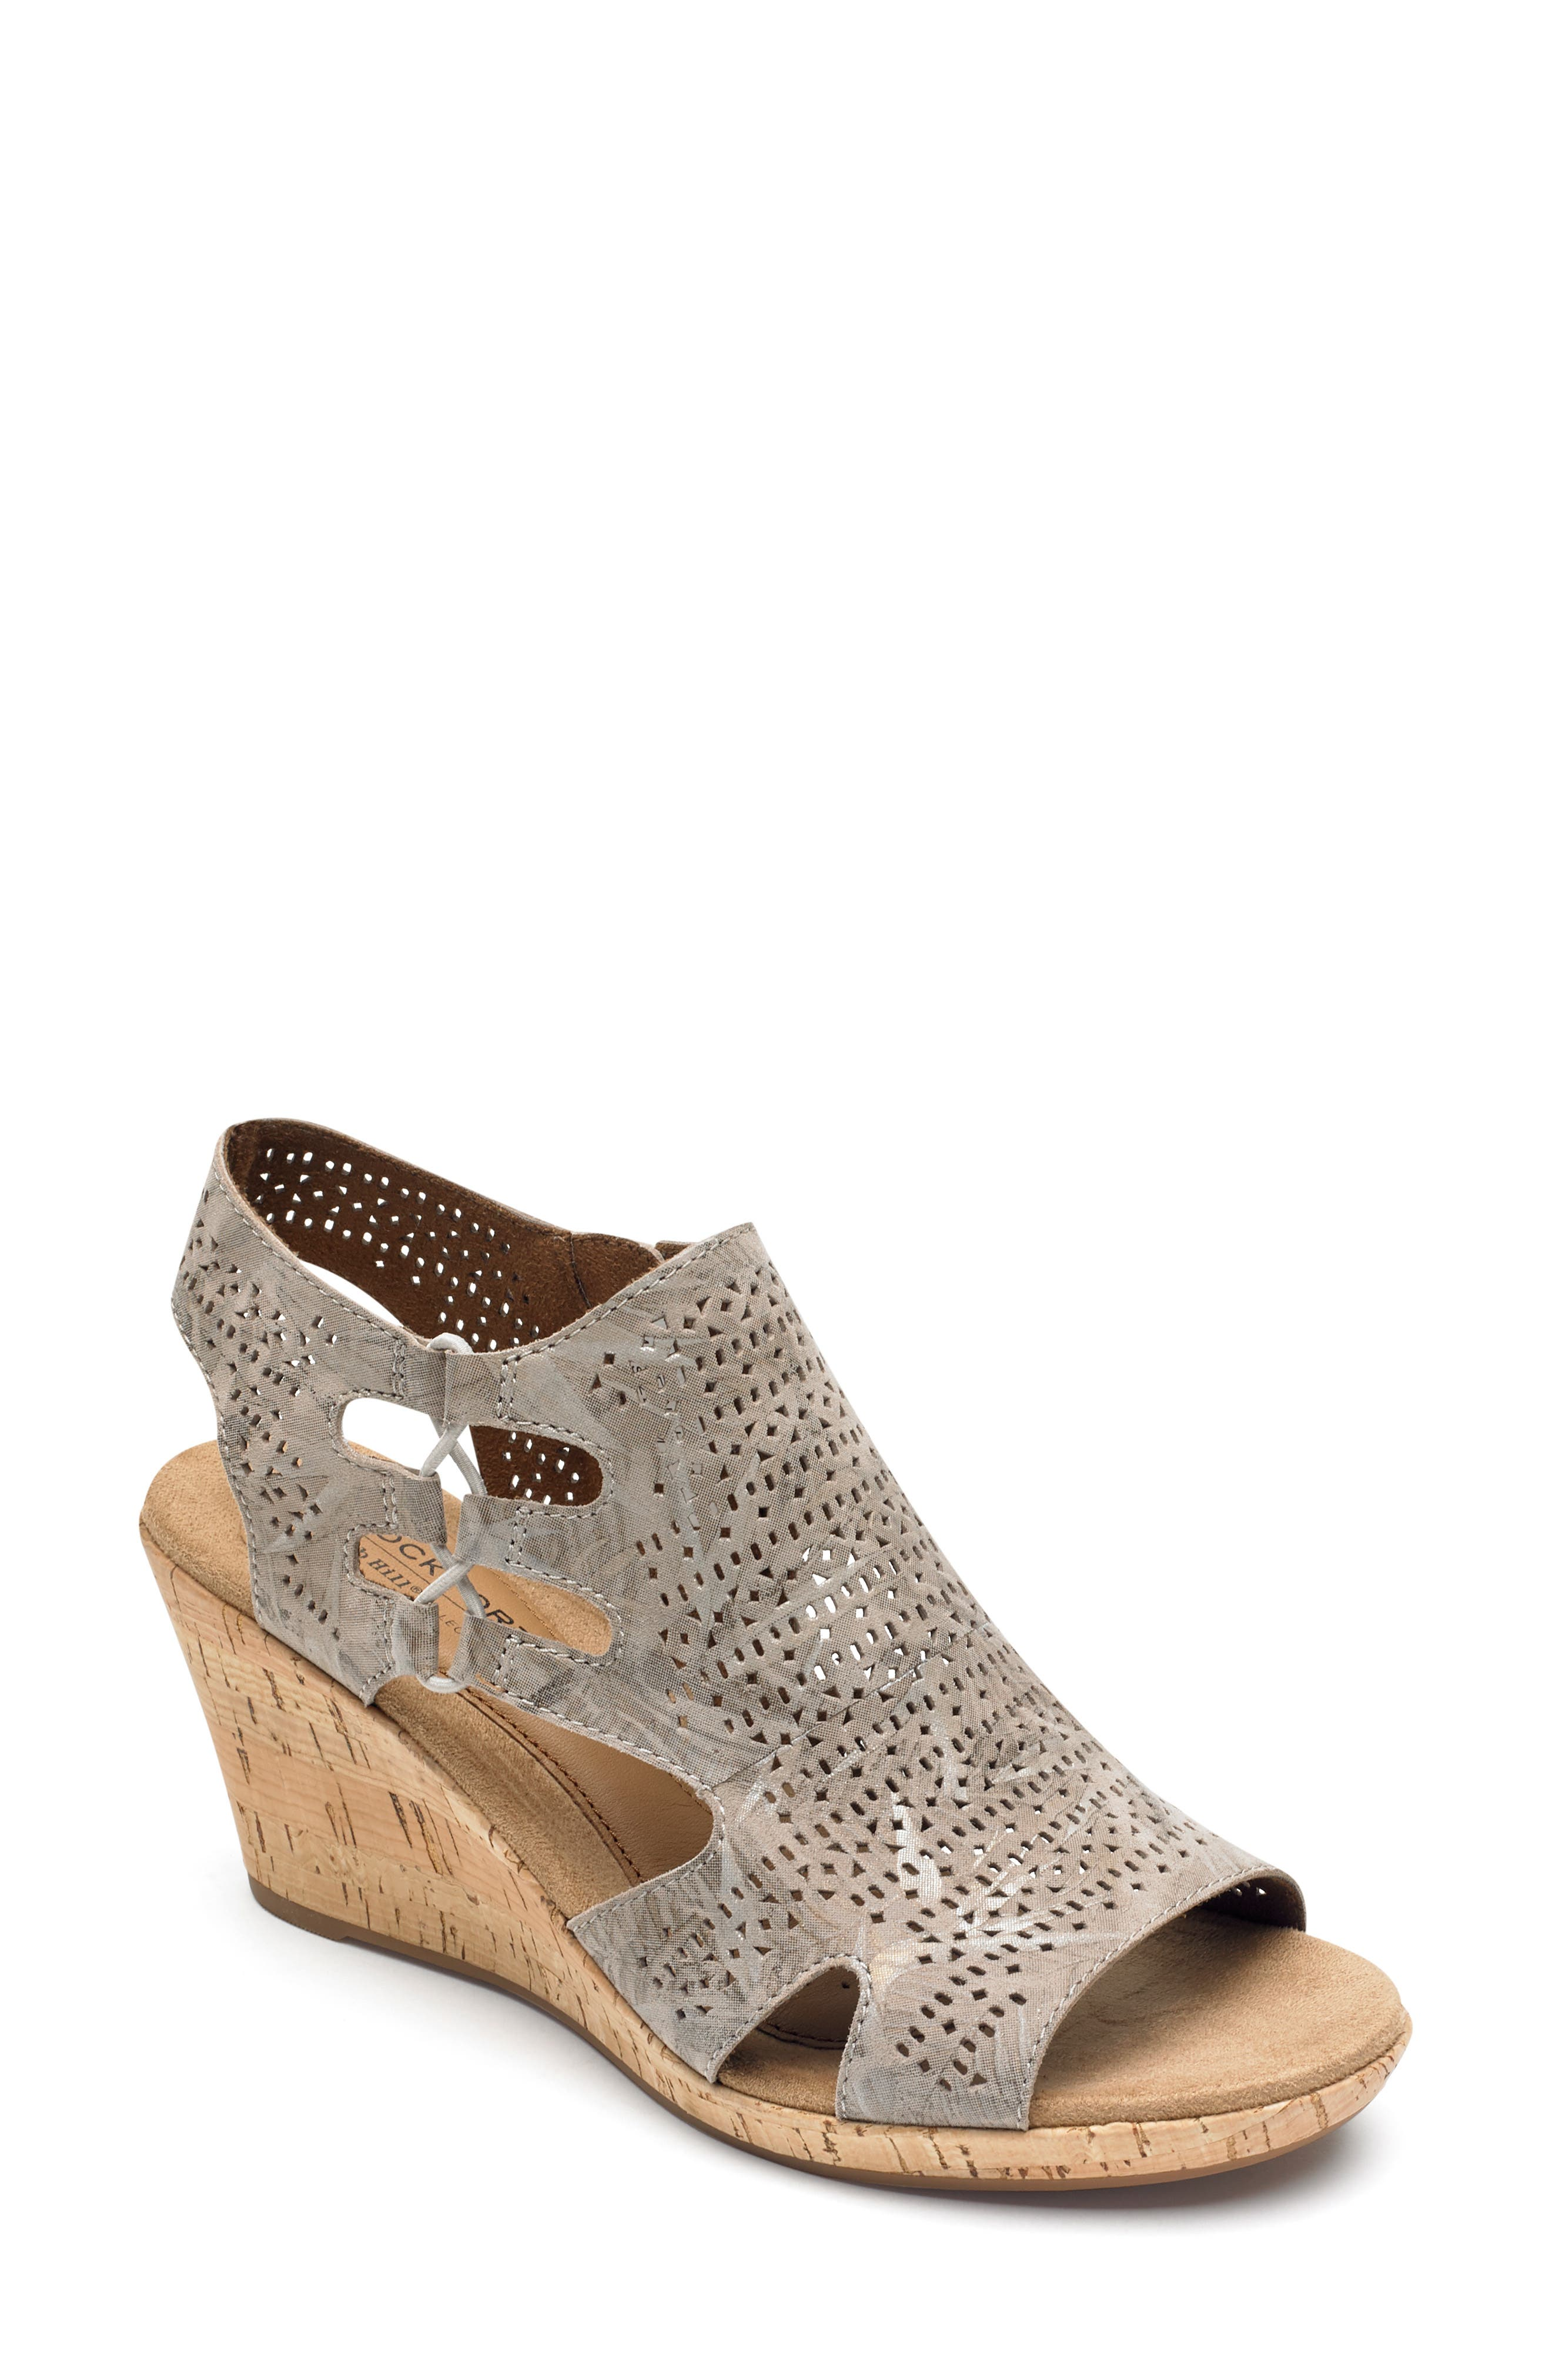 ROCKPORT COBB HILL Janna Perforated Wedge Sandal, Main, color, FLORAL METALLIC LEATHER